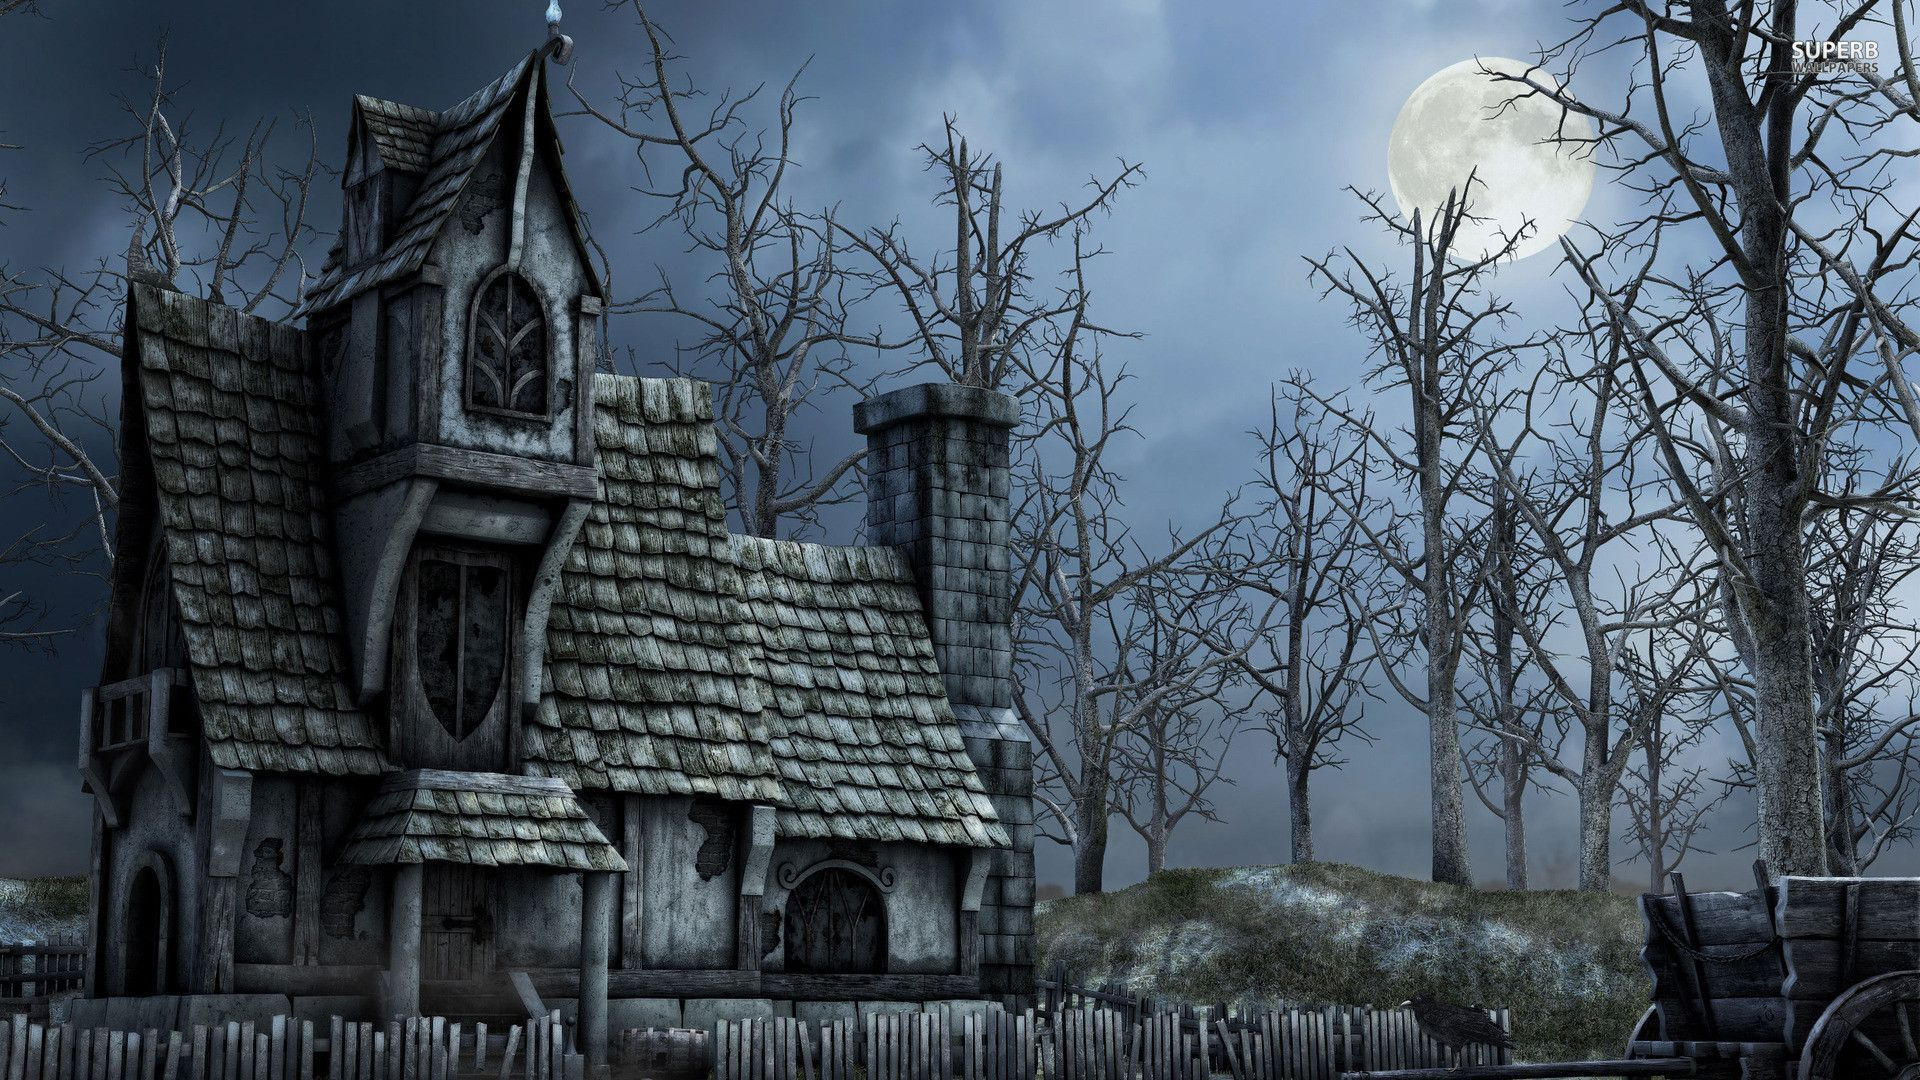 Haunted House Wallpaper 1920 X 1080 With Images Haunted